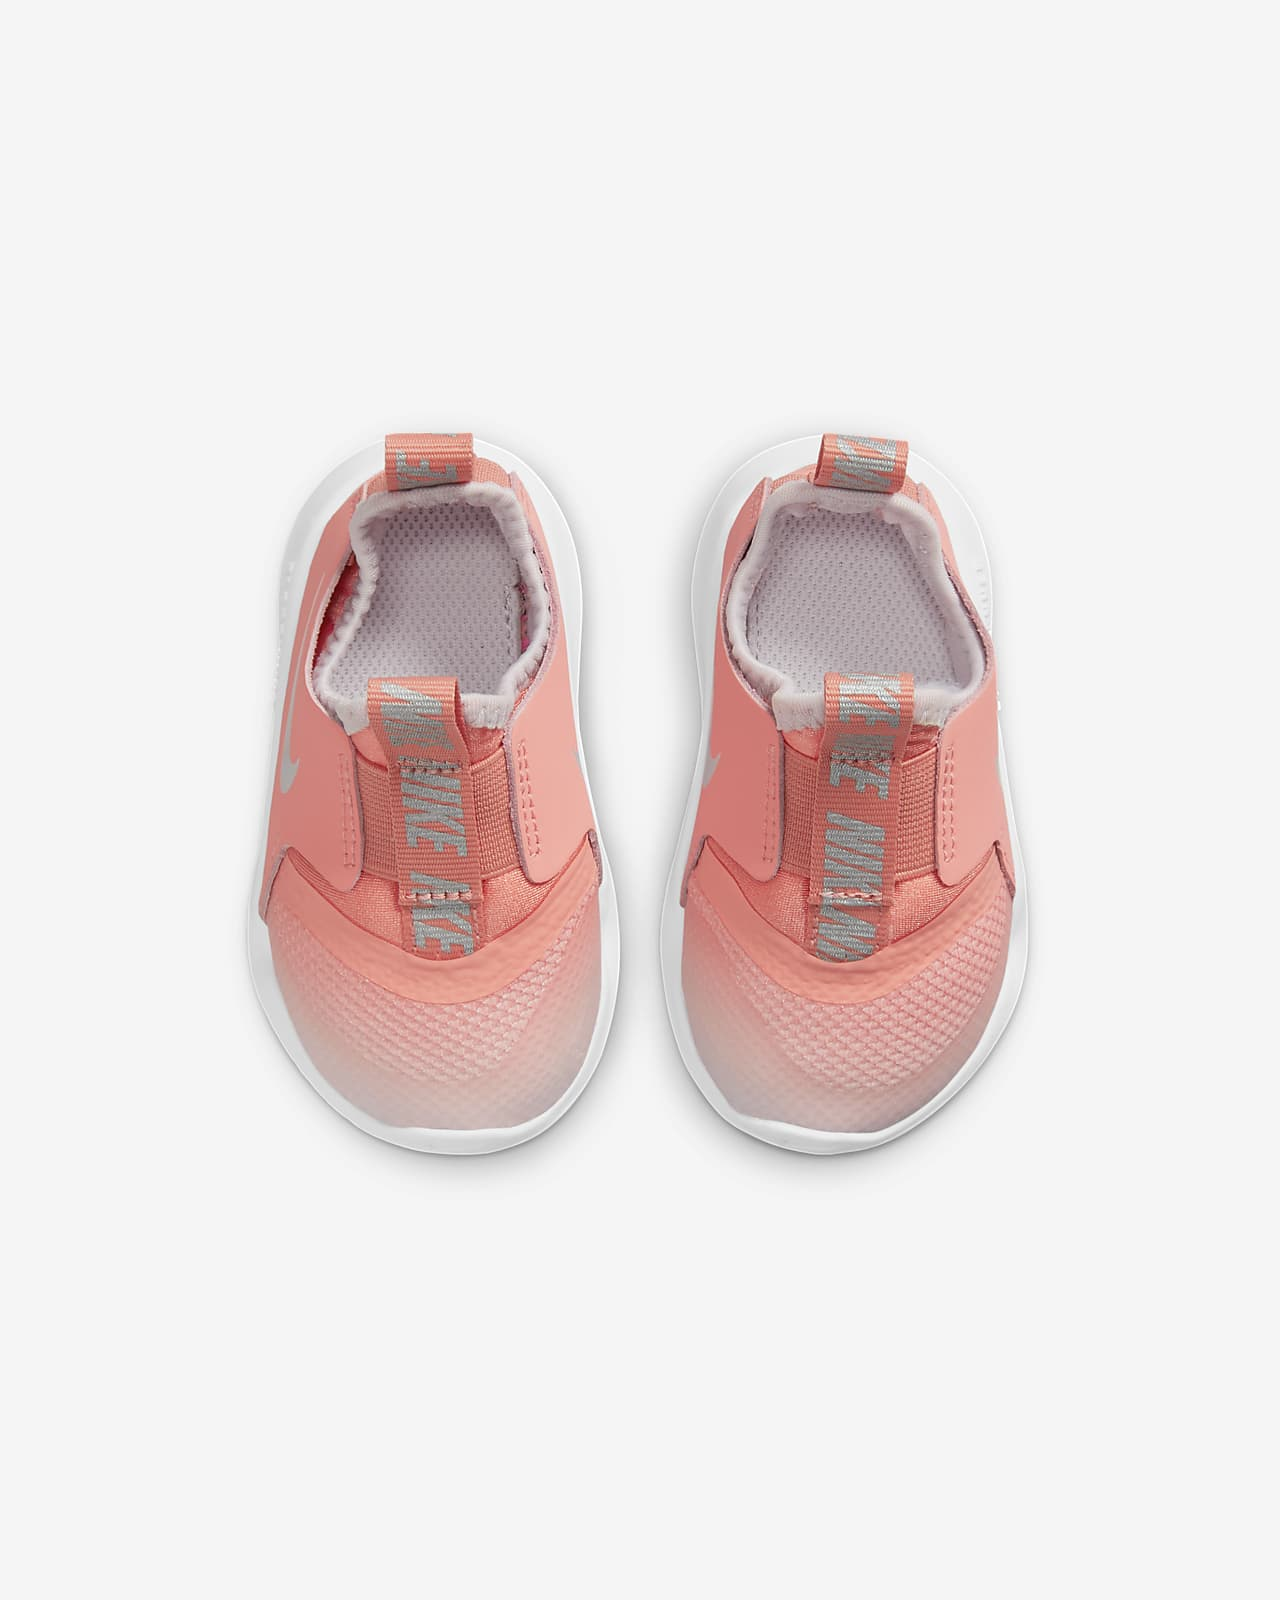 Football Leather Baby Shoes Sports Baby